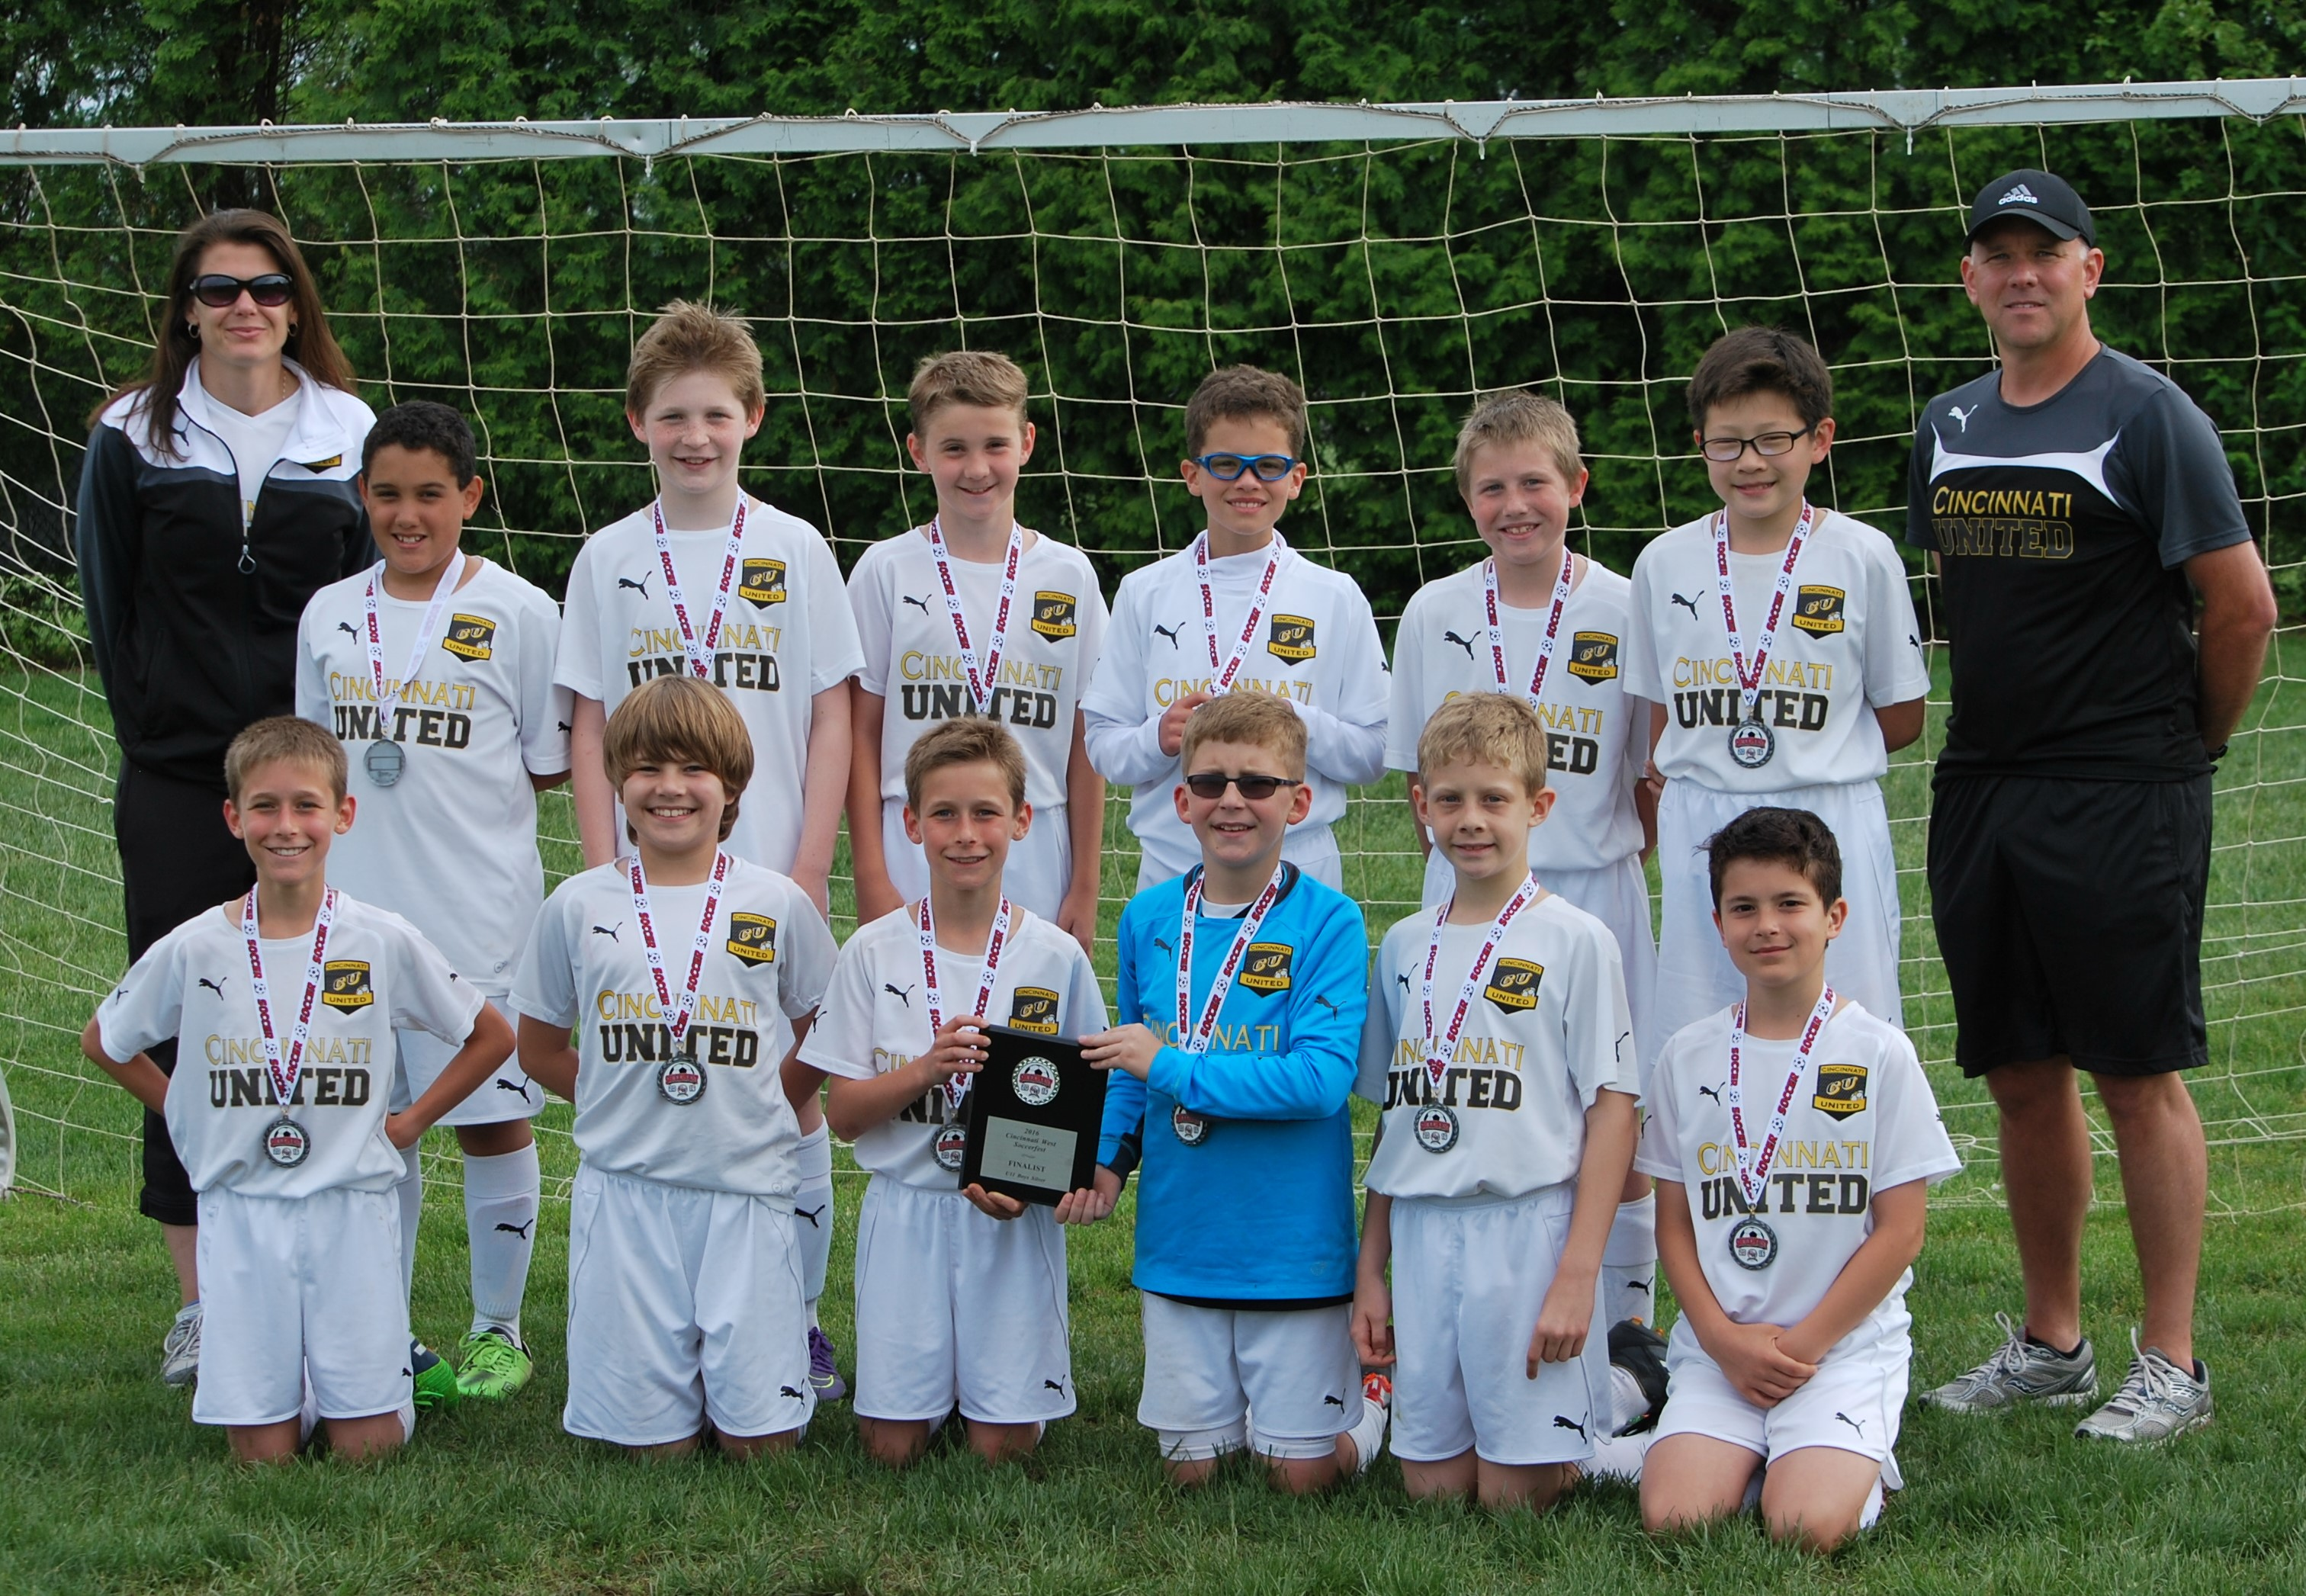 CU Revolution Finalists at CW Soccer Fest (U11 Boys)